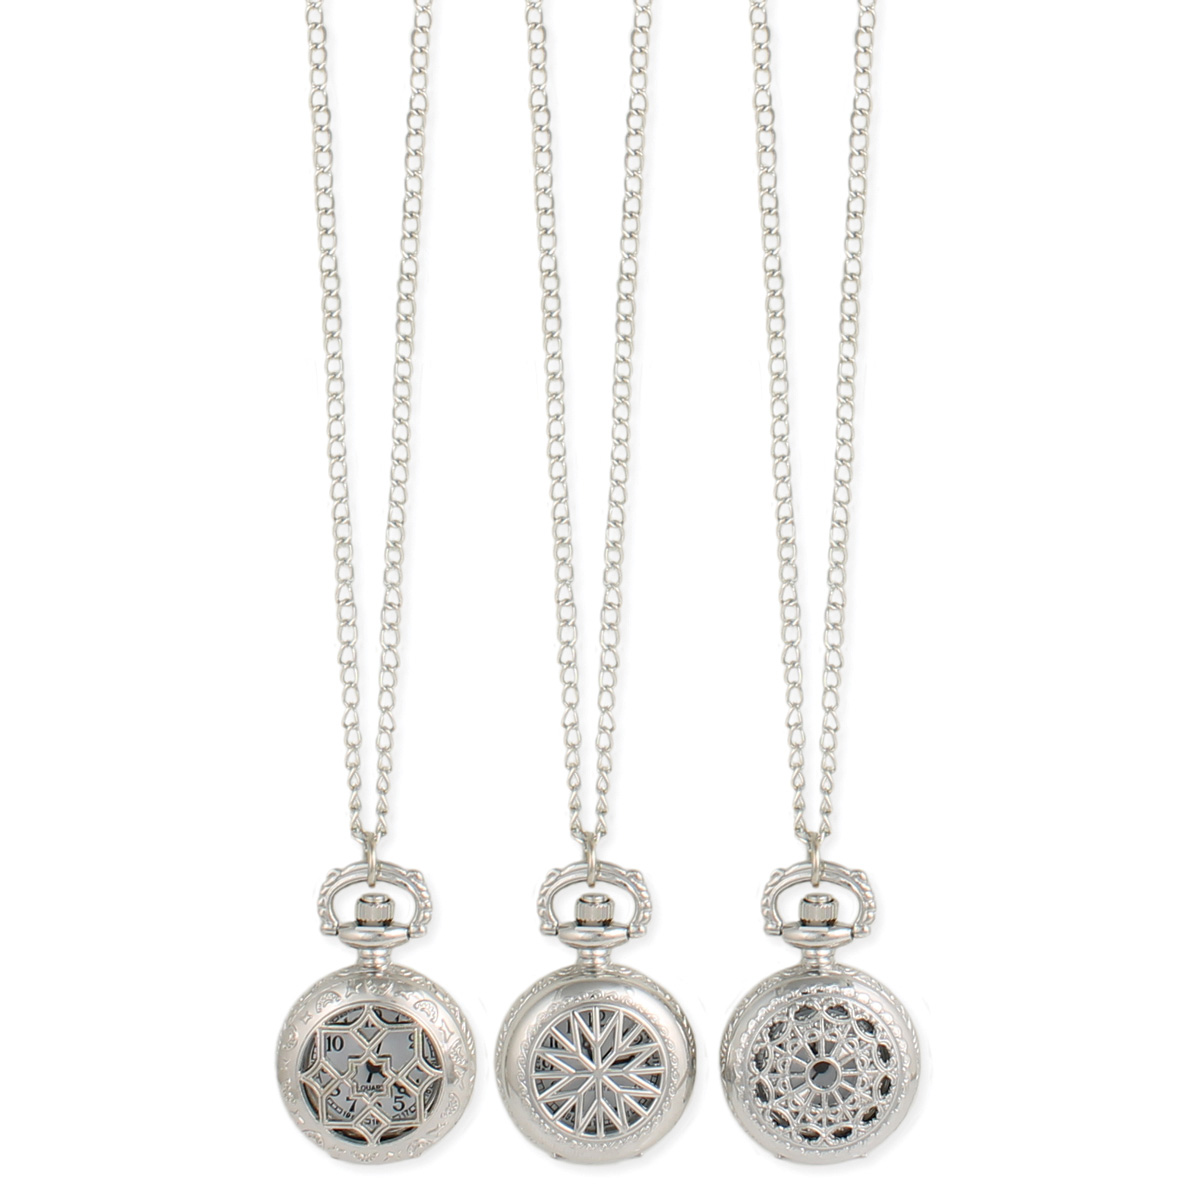 Shiny Silver Cutout Locket Watch Necklace